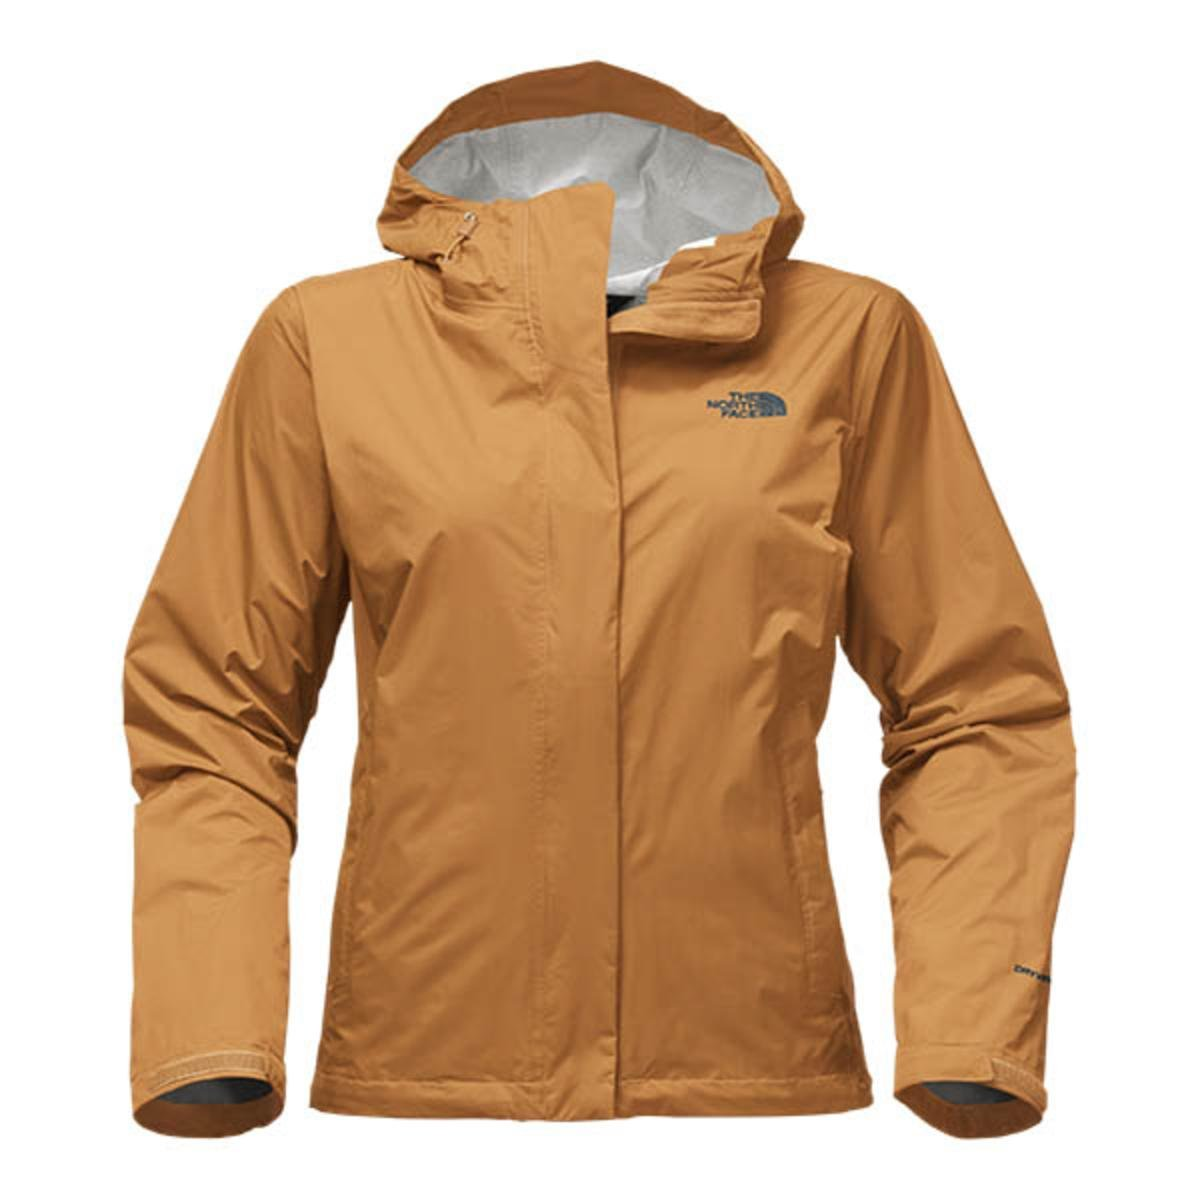 The North Face Women's Venture 2 Jacket Biscuit Tan (X-Large)